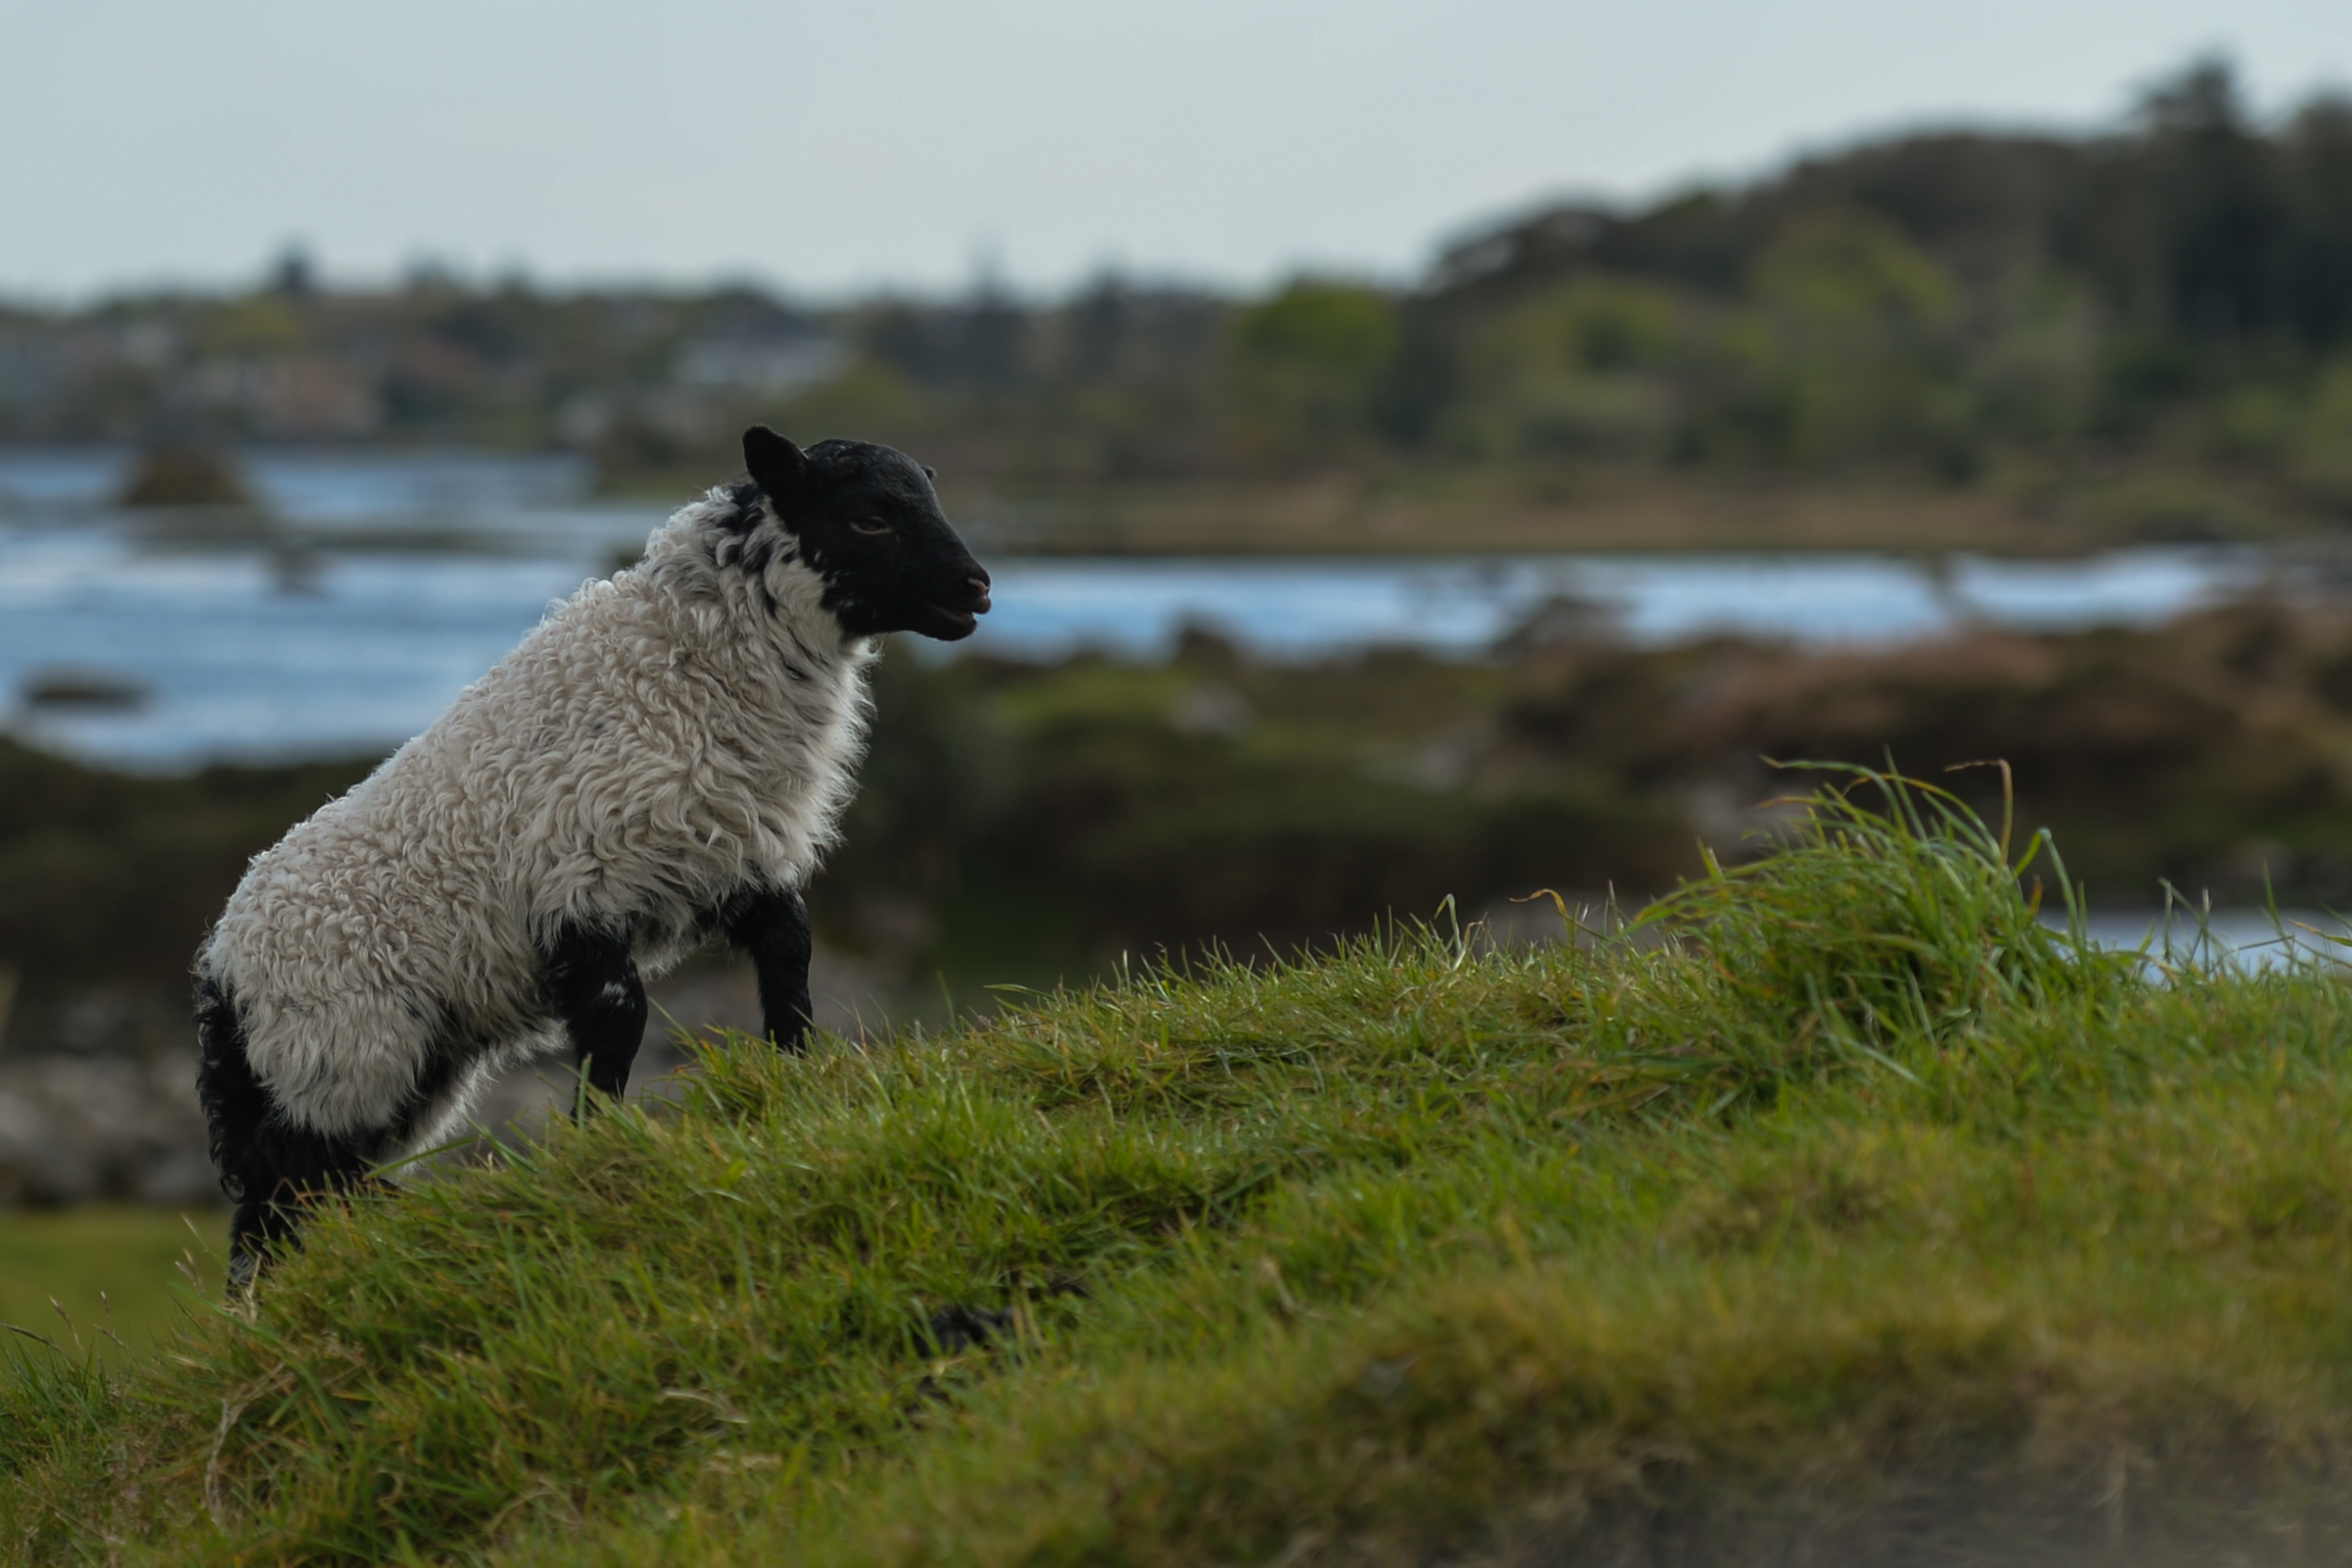 Daily Life In Connemara During COVID-19 Lockdown